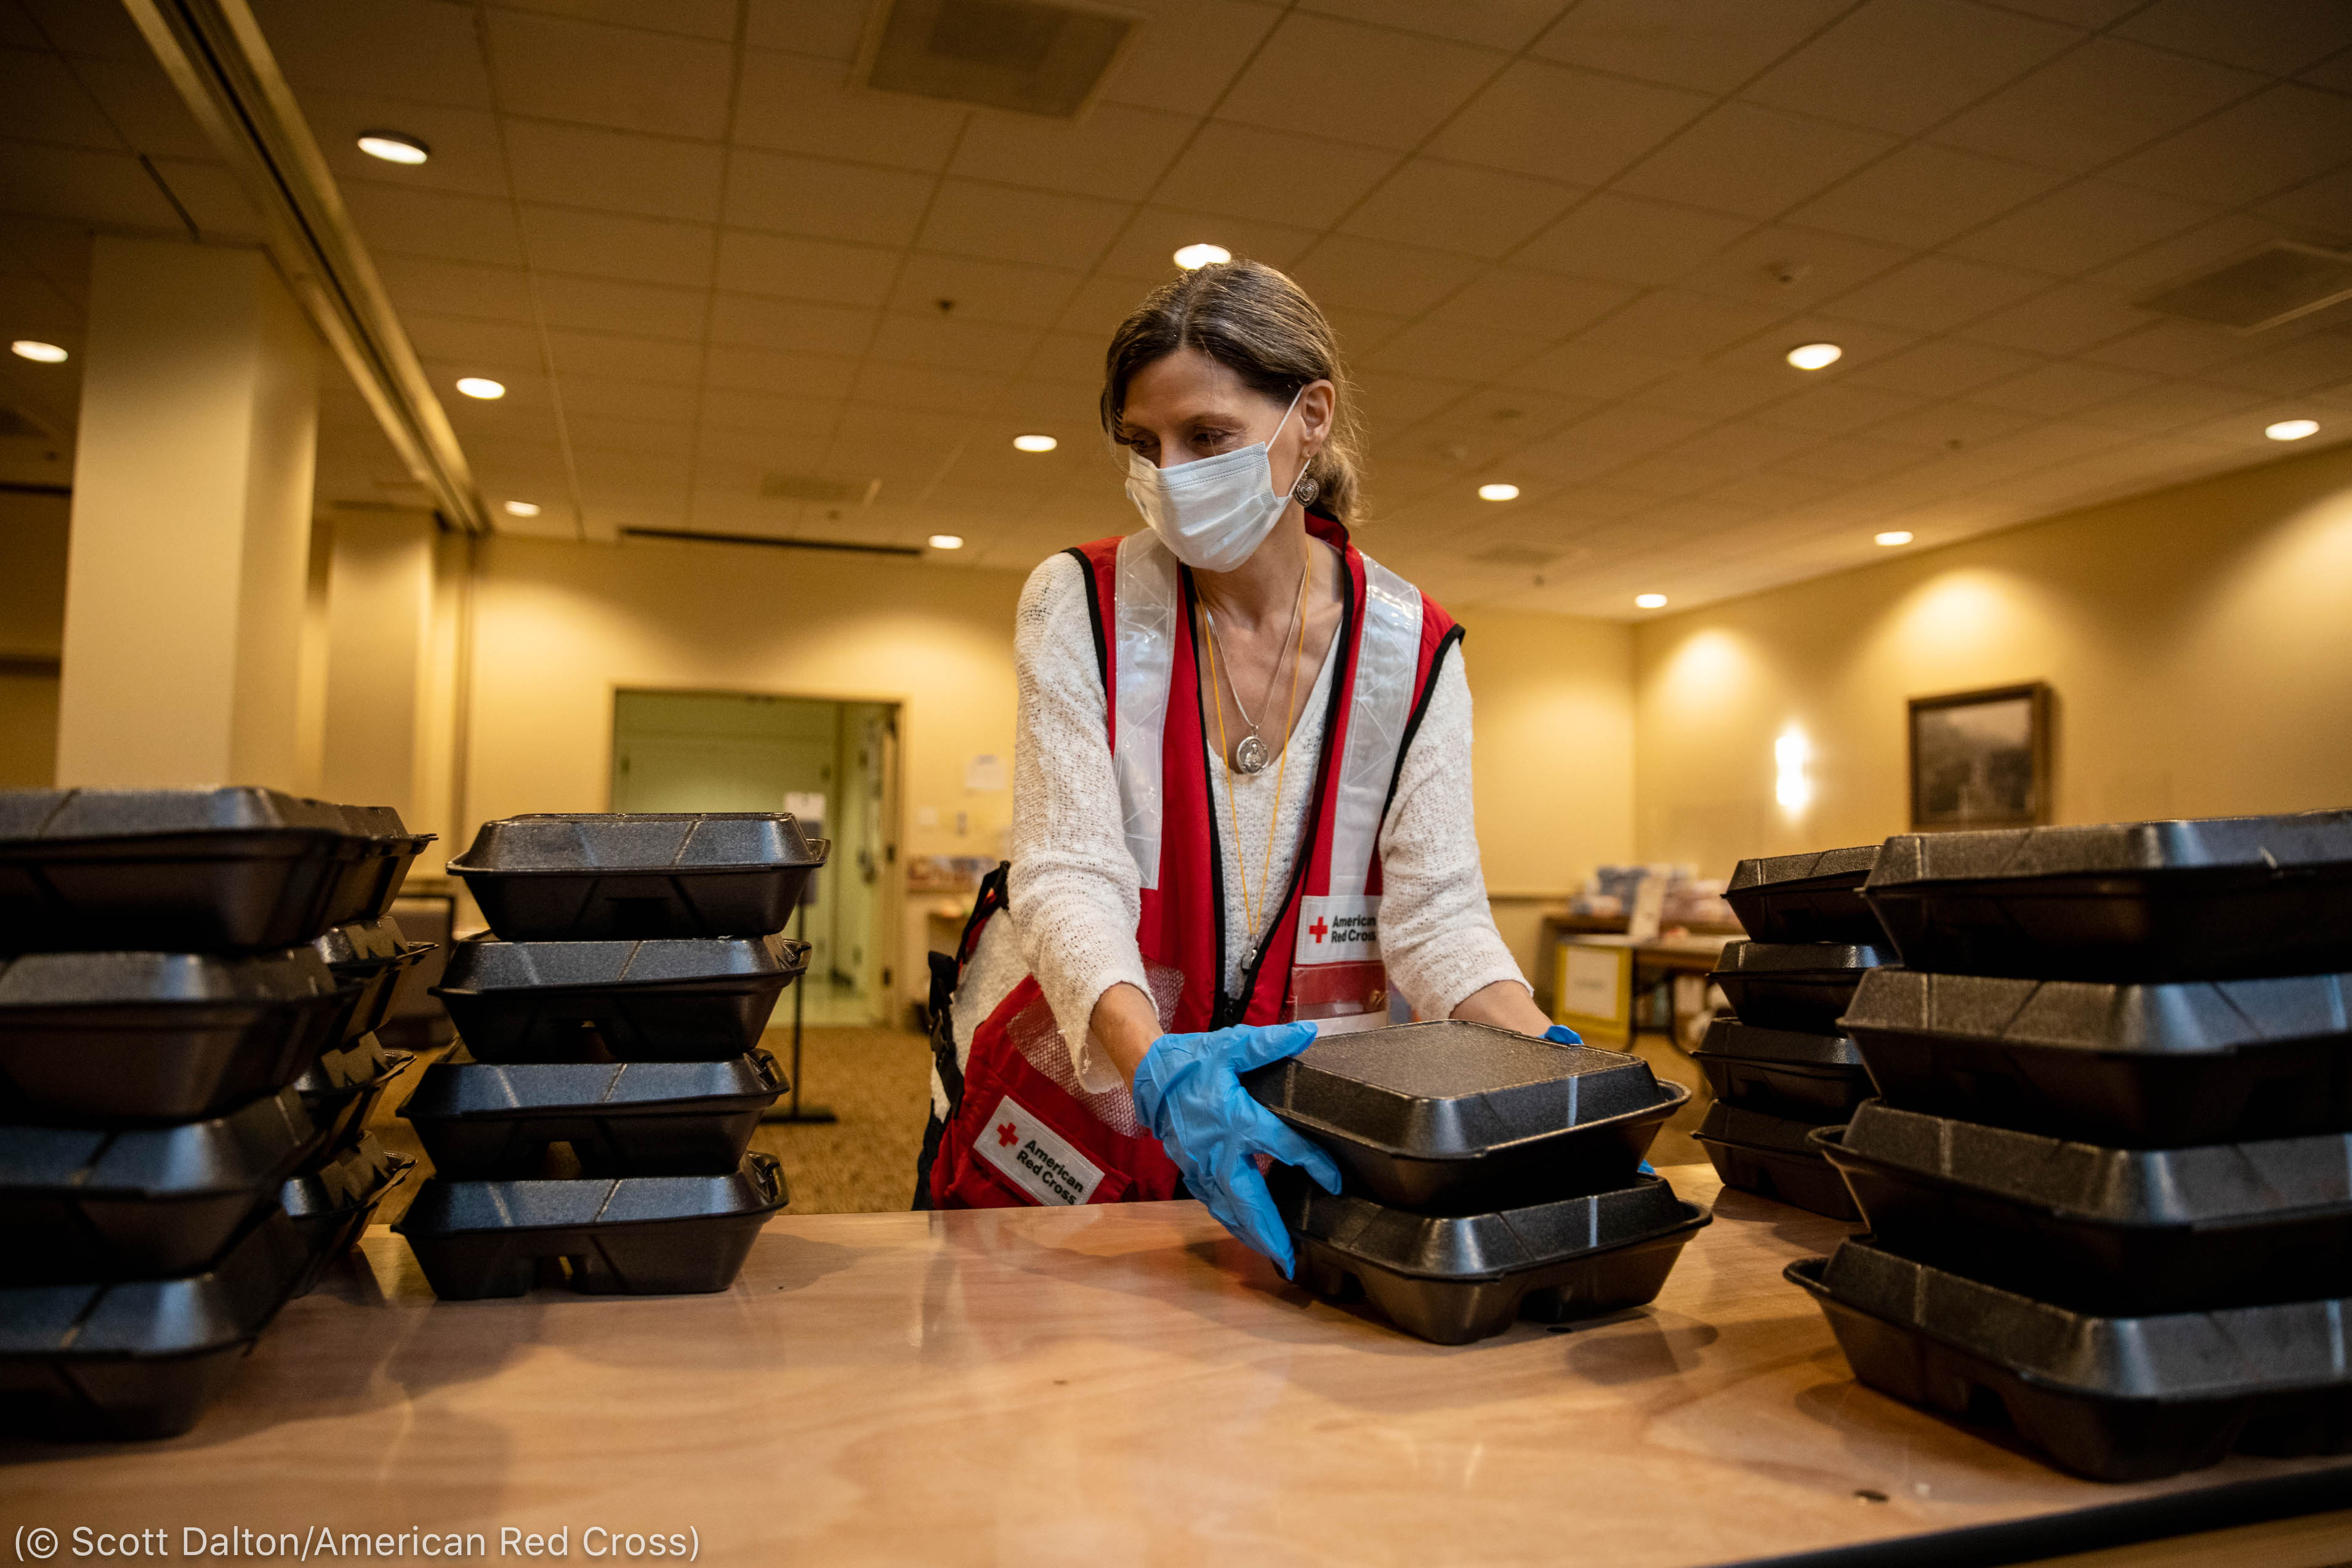 Woman wearing protective mask and gloves while stacking boxes on counter (© Scott Dalton/American Red Cross)